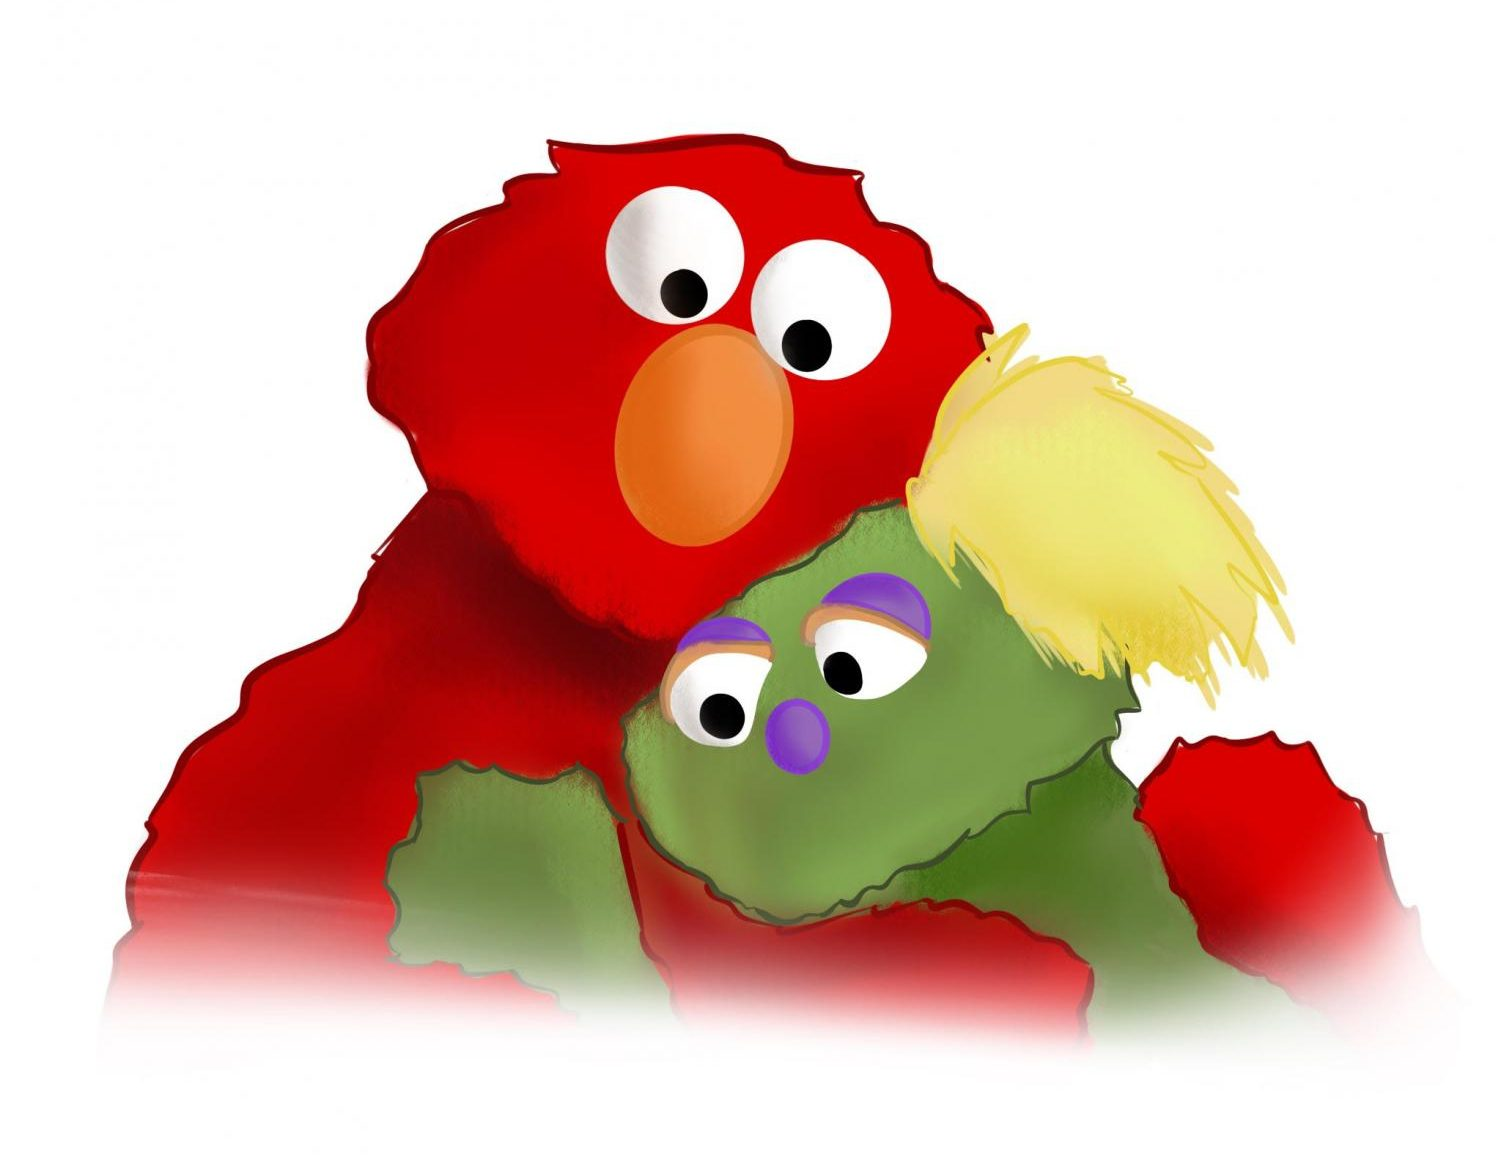 Sesame Street's Elmo and Karli, whose mother is in rehab for addiction, share a comforting hug.